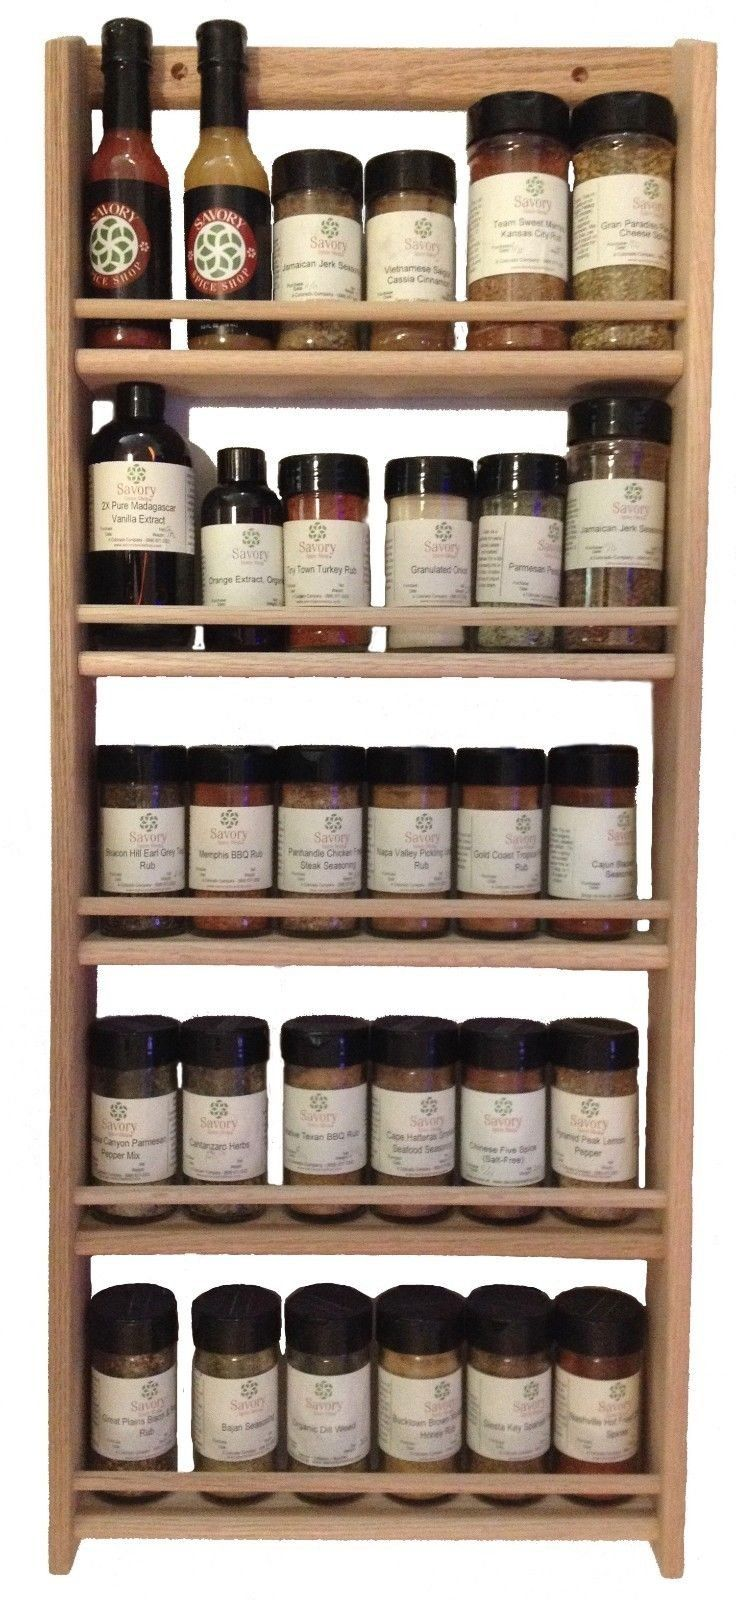 "Wood Spice Rack For Wall Amusing Solid Oak Wood Spice Rack  3275""h X 1375 ""w  Wall Mount Wooden Inspiration Design"